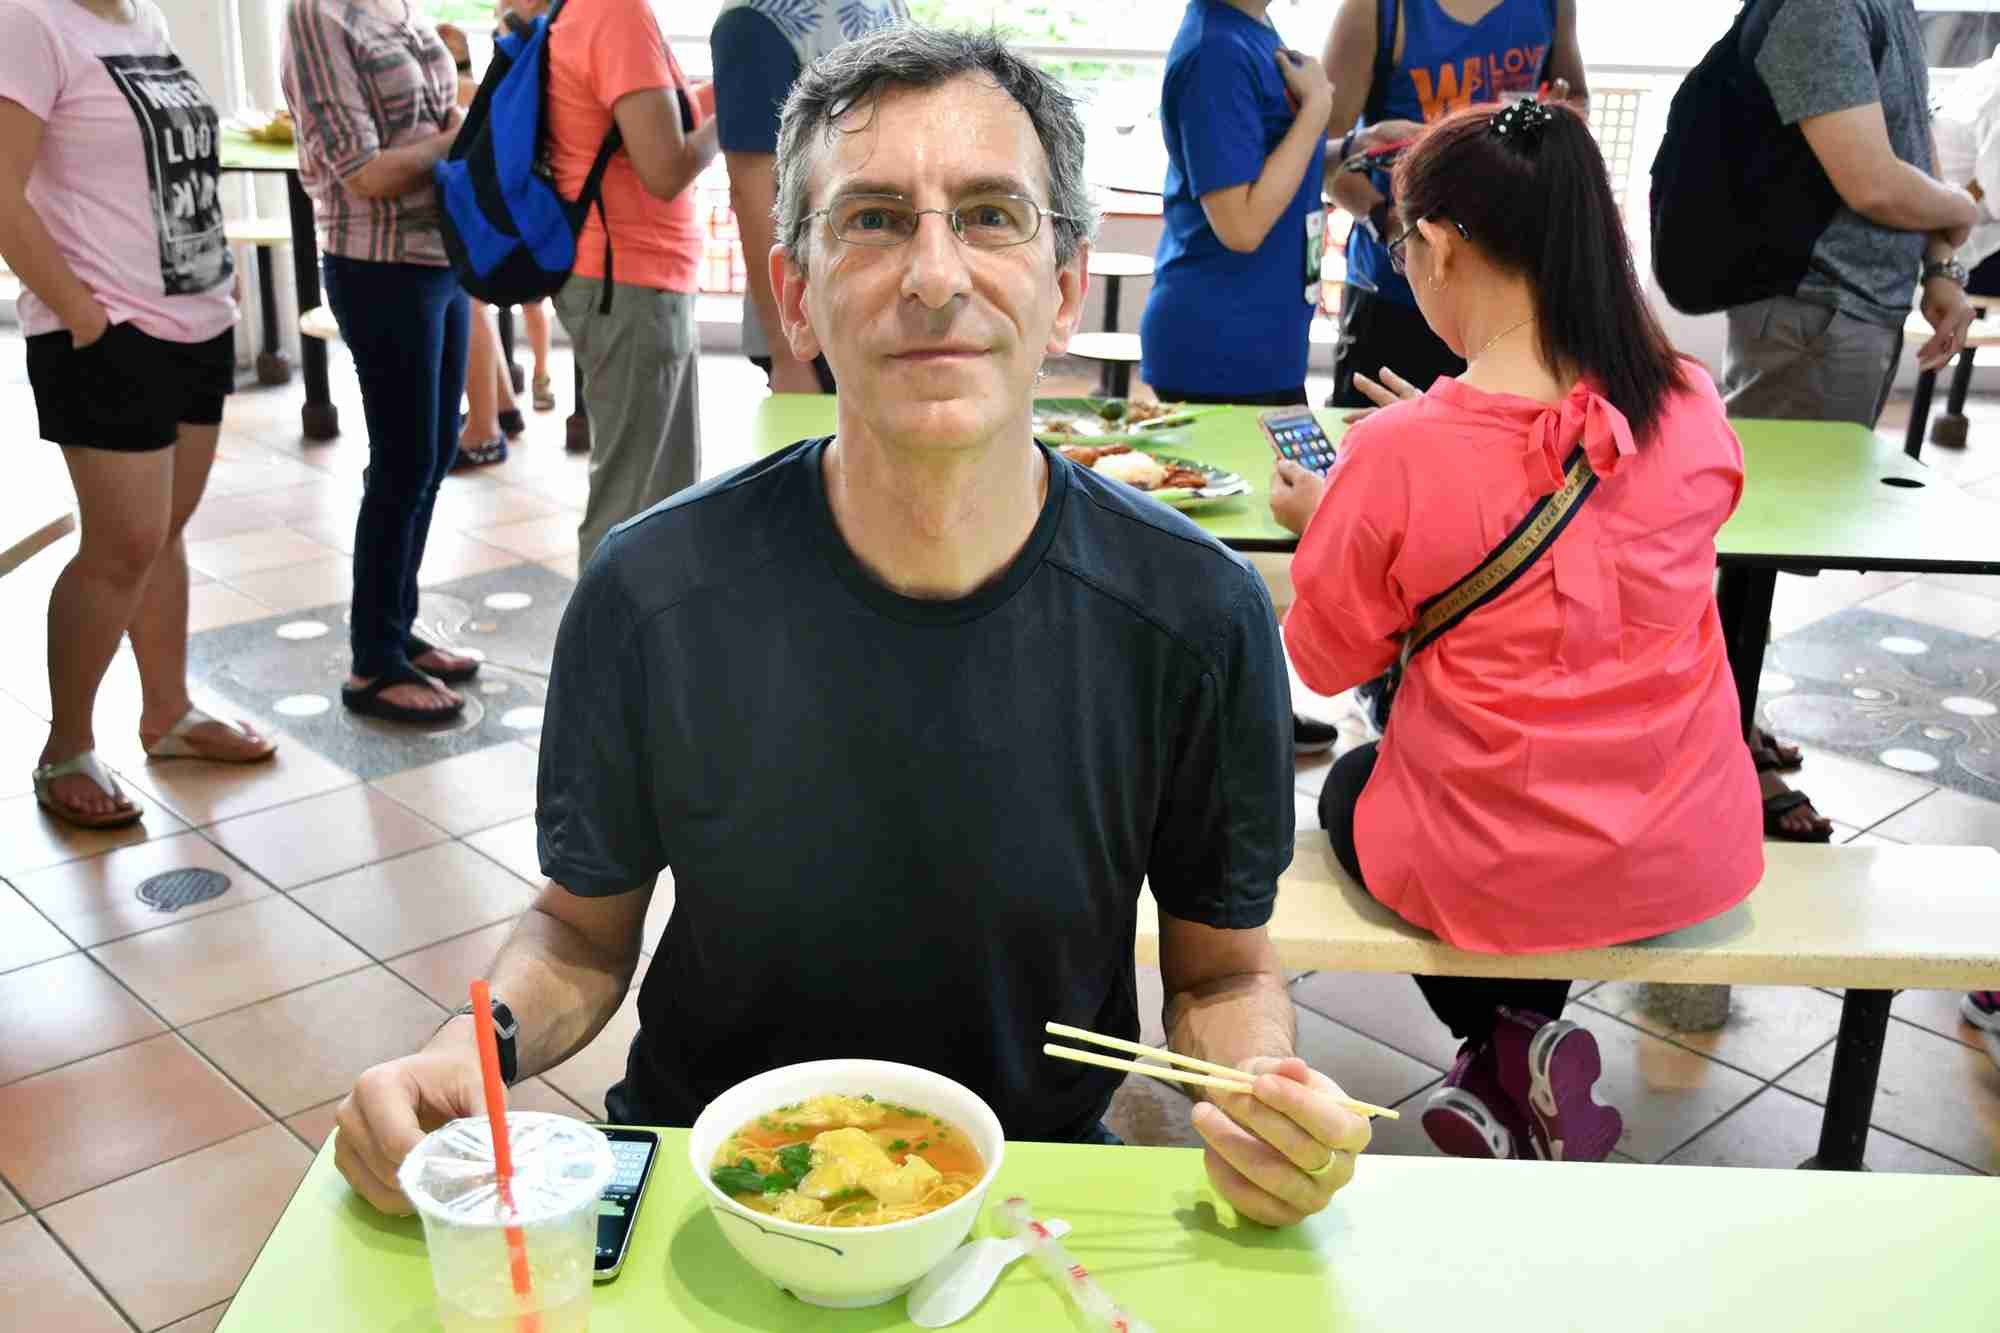 Street food while data-roaming in Singapore. (Image by the author)